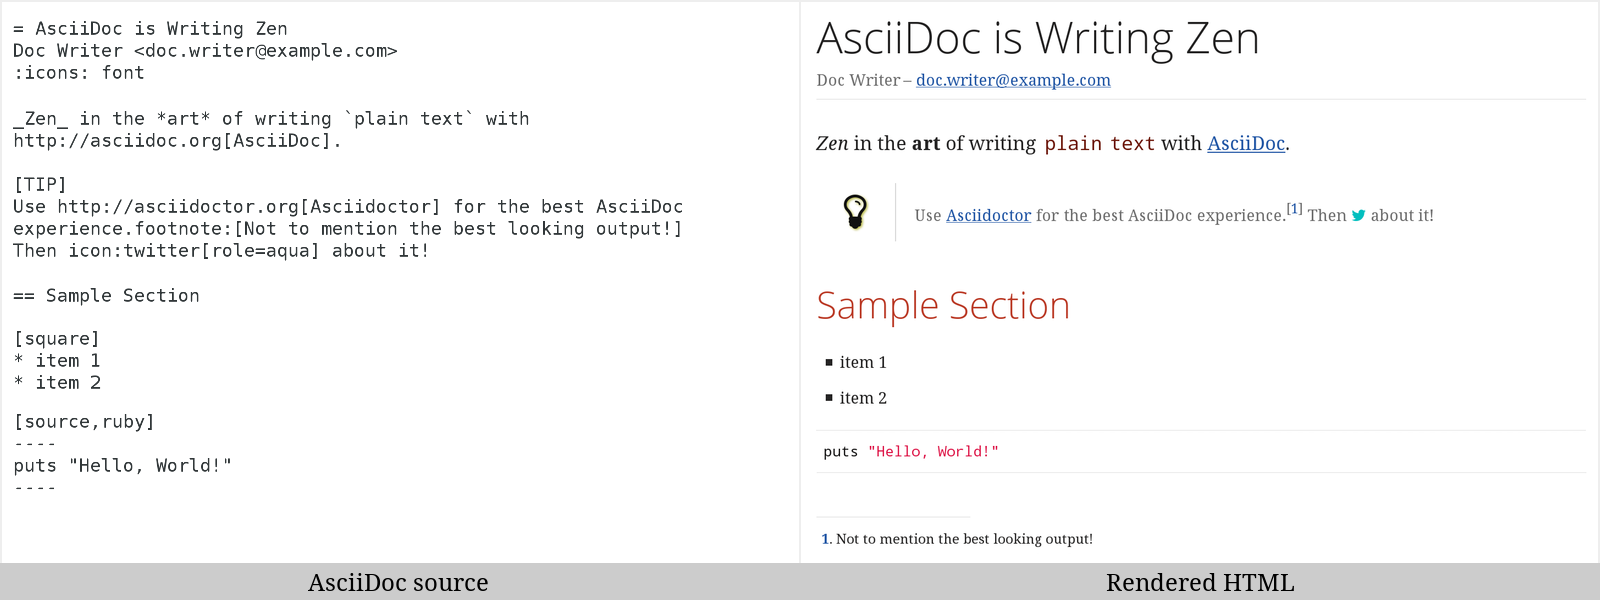 Asciidoctor User Manual